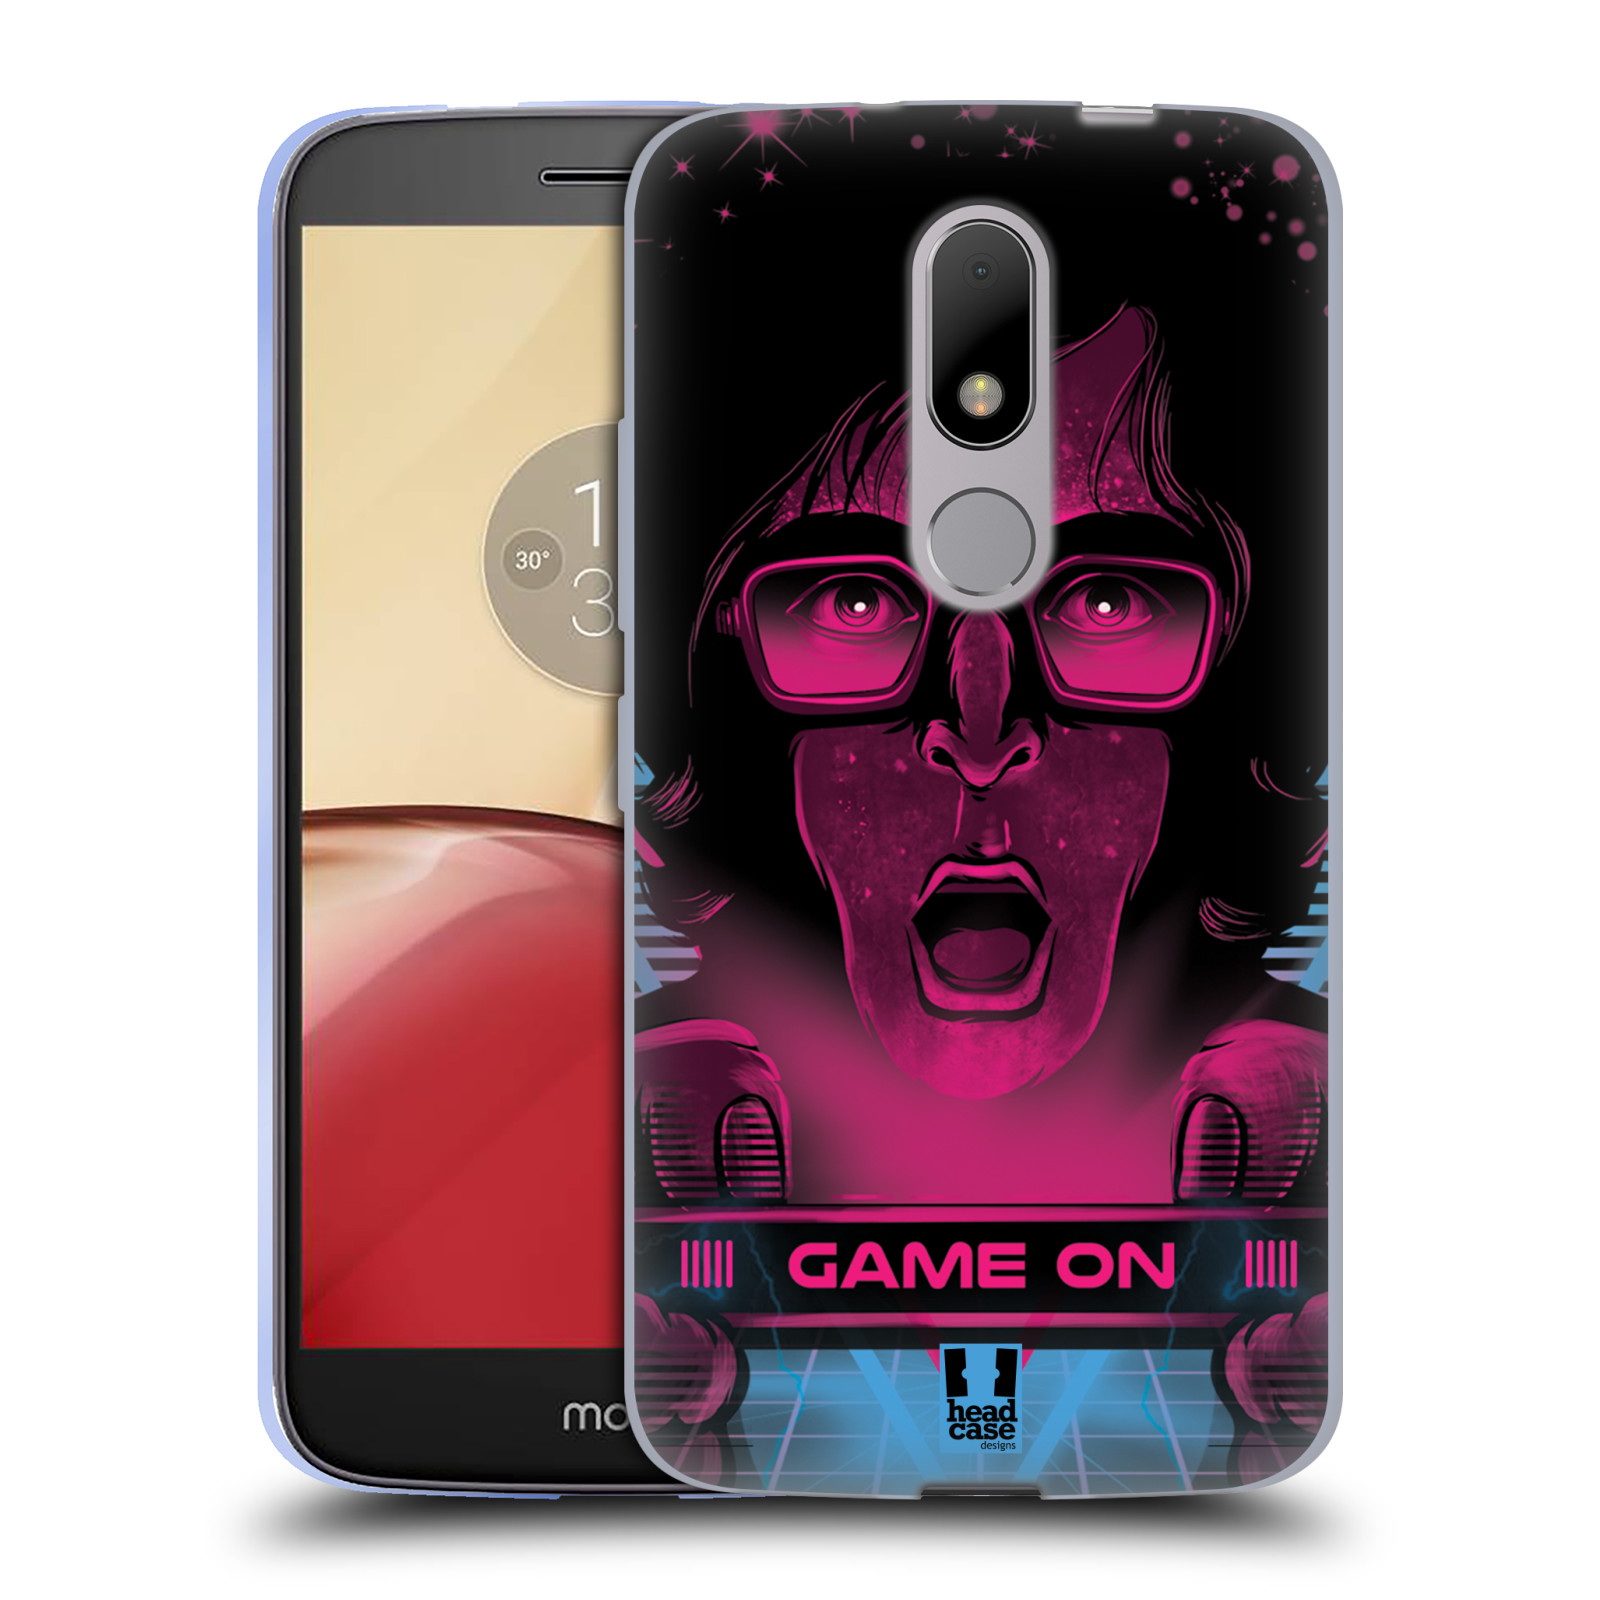 HEAD-CASE-DESIGNS-THE-80-039-S-GRAPHIC-VIBES-SOFT-GEL-CASE-FOR-MOTOROLA-MOTO-M